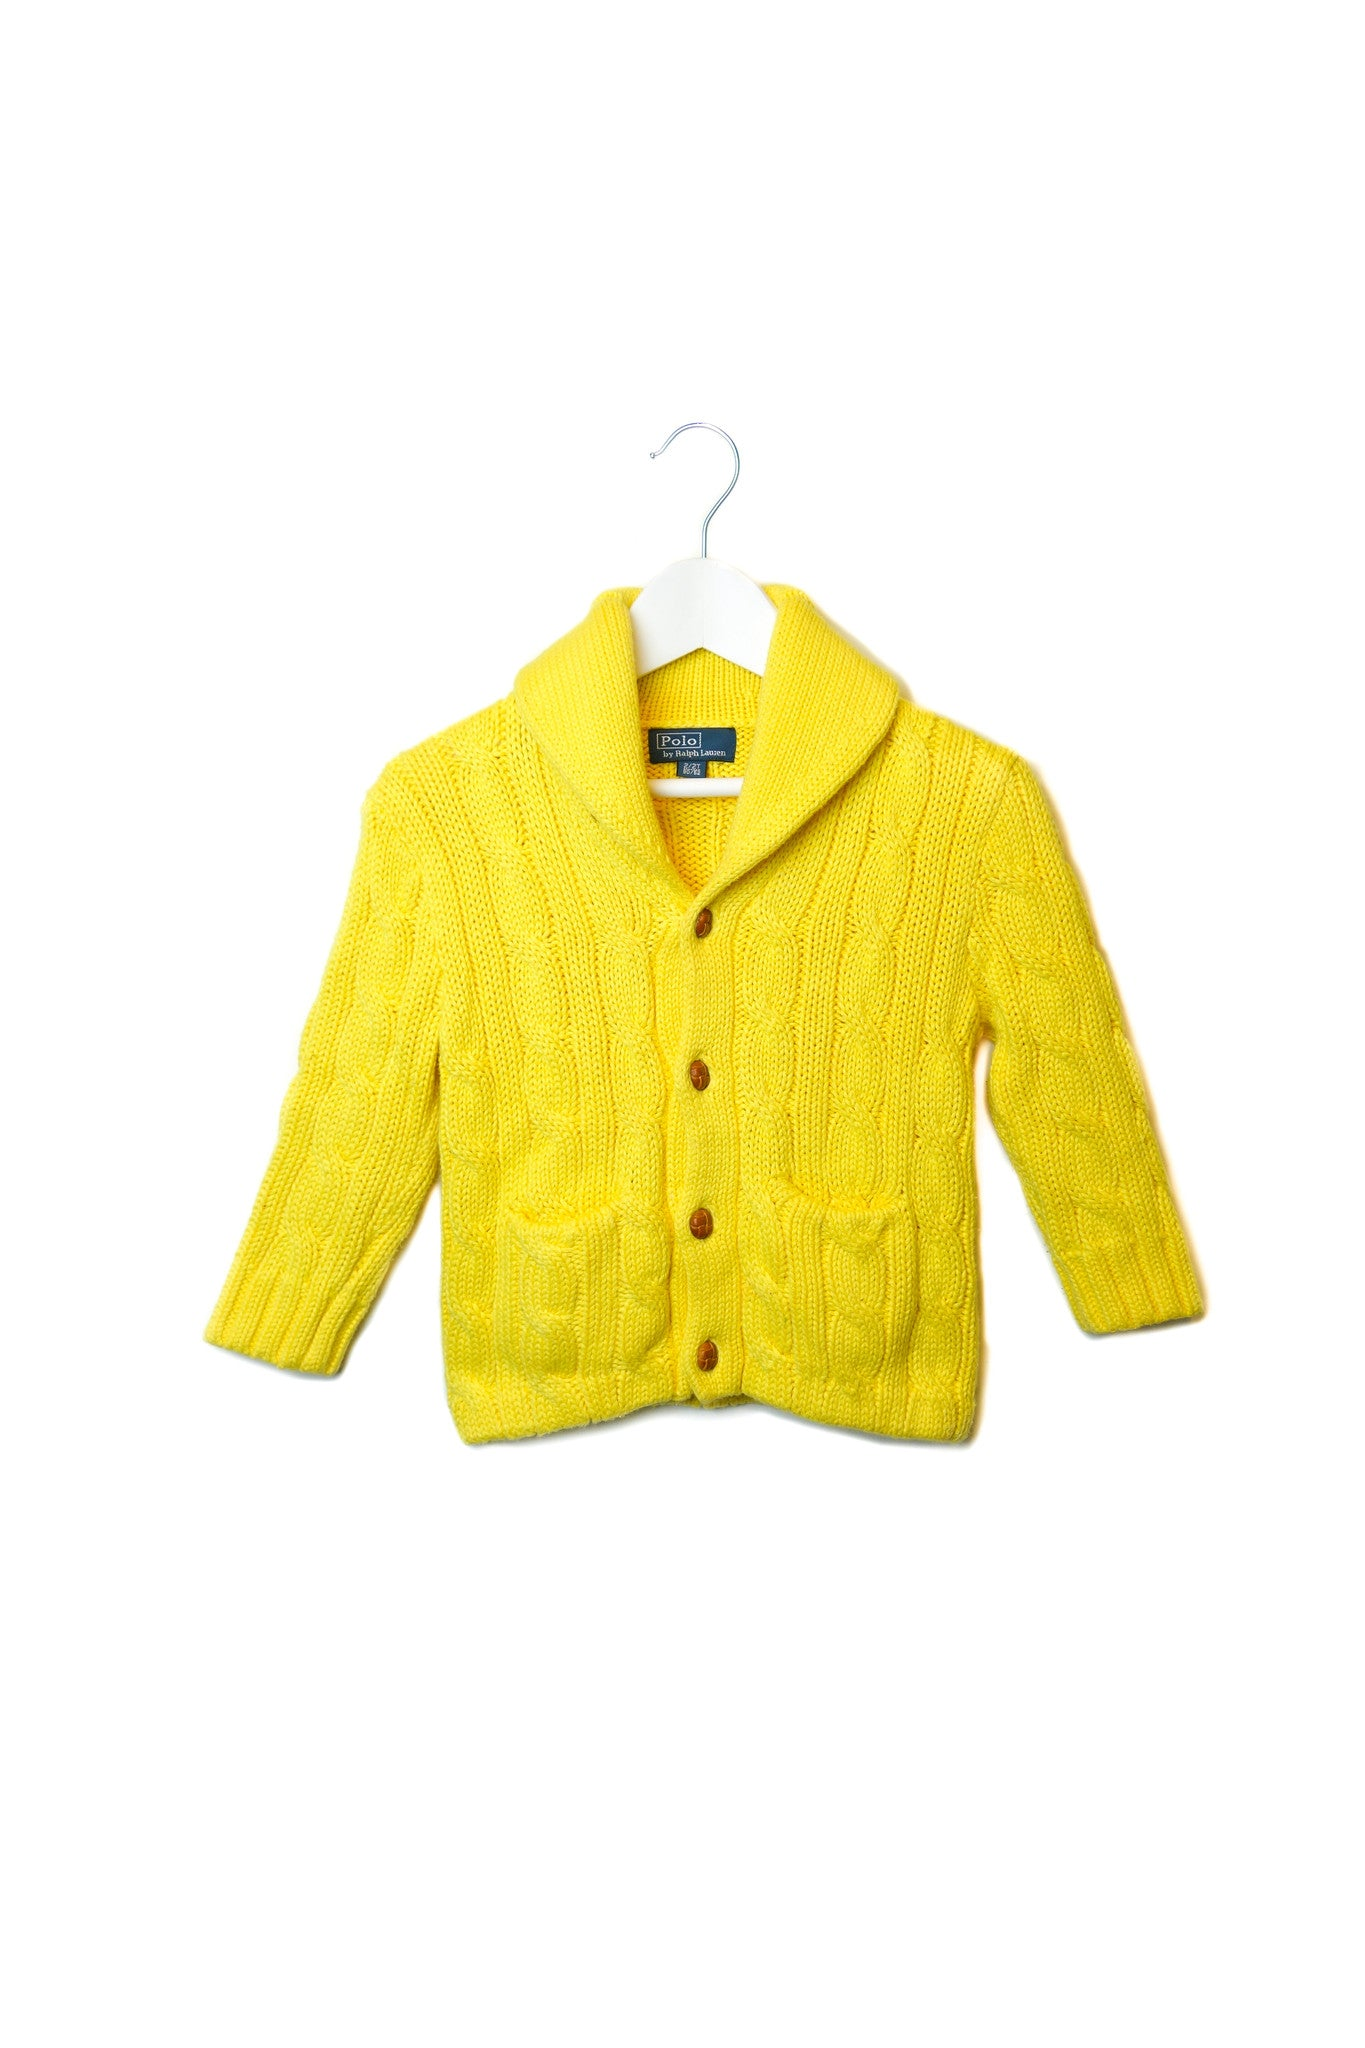 10001770 Polo Ralph Lauren Kids~Cardigan 2T at Retykle